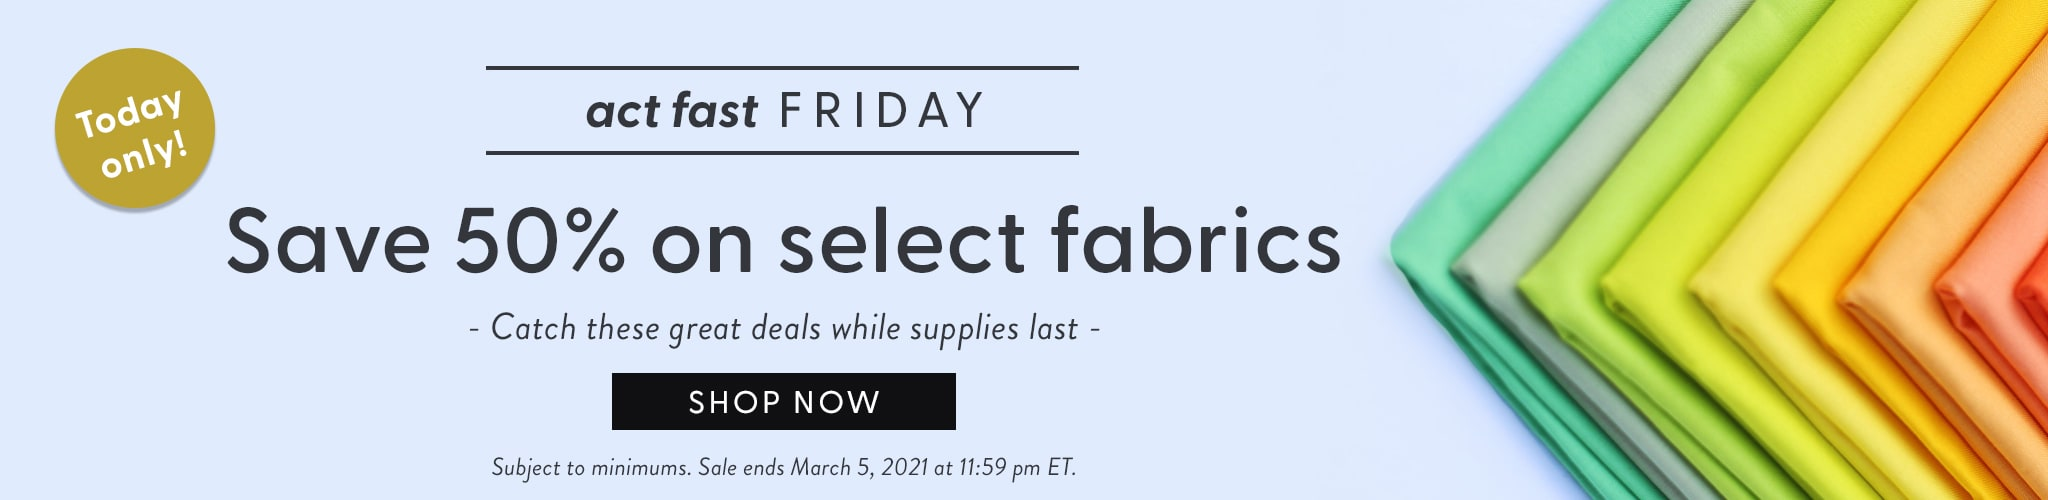 Act Fast Friday - Save 50% on Last Chance Fabrics